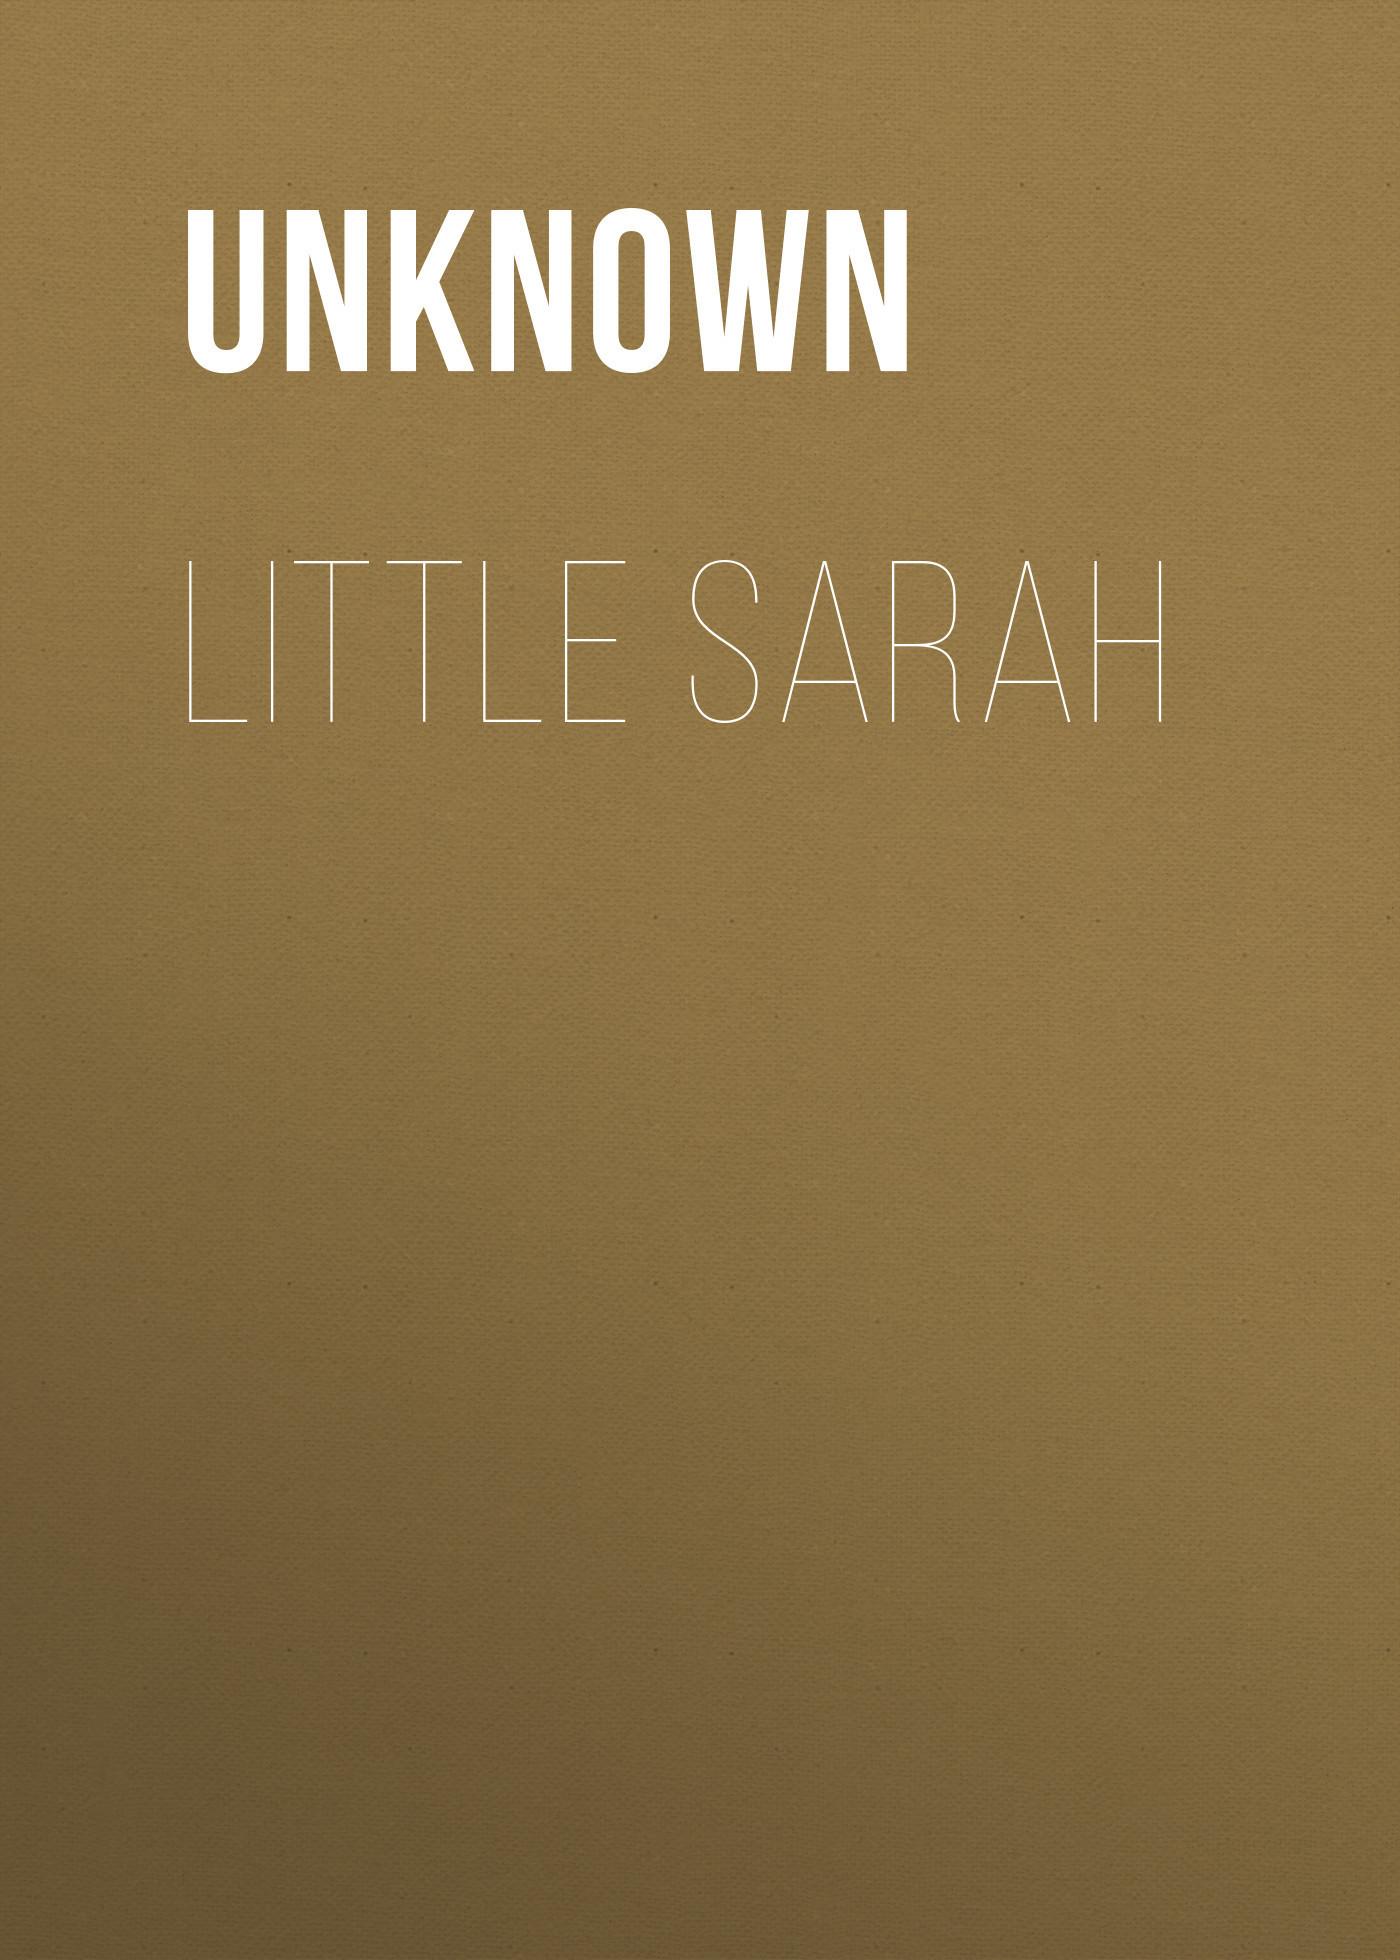 Unknown Little Sarah others cunningham sarah moor peter cutting edge 3rd ed advanced trb cd